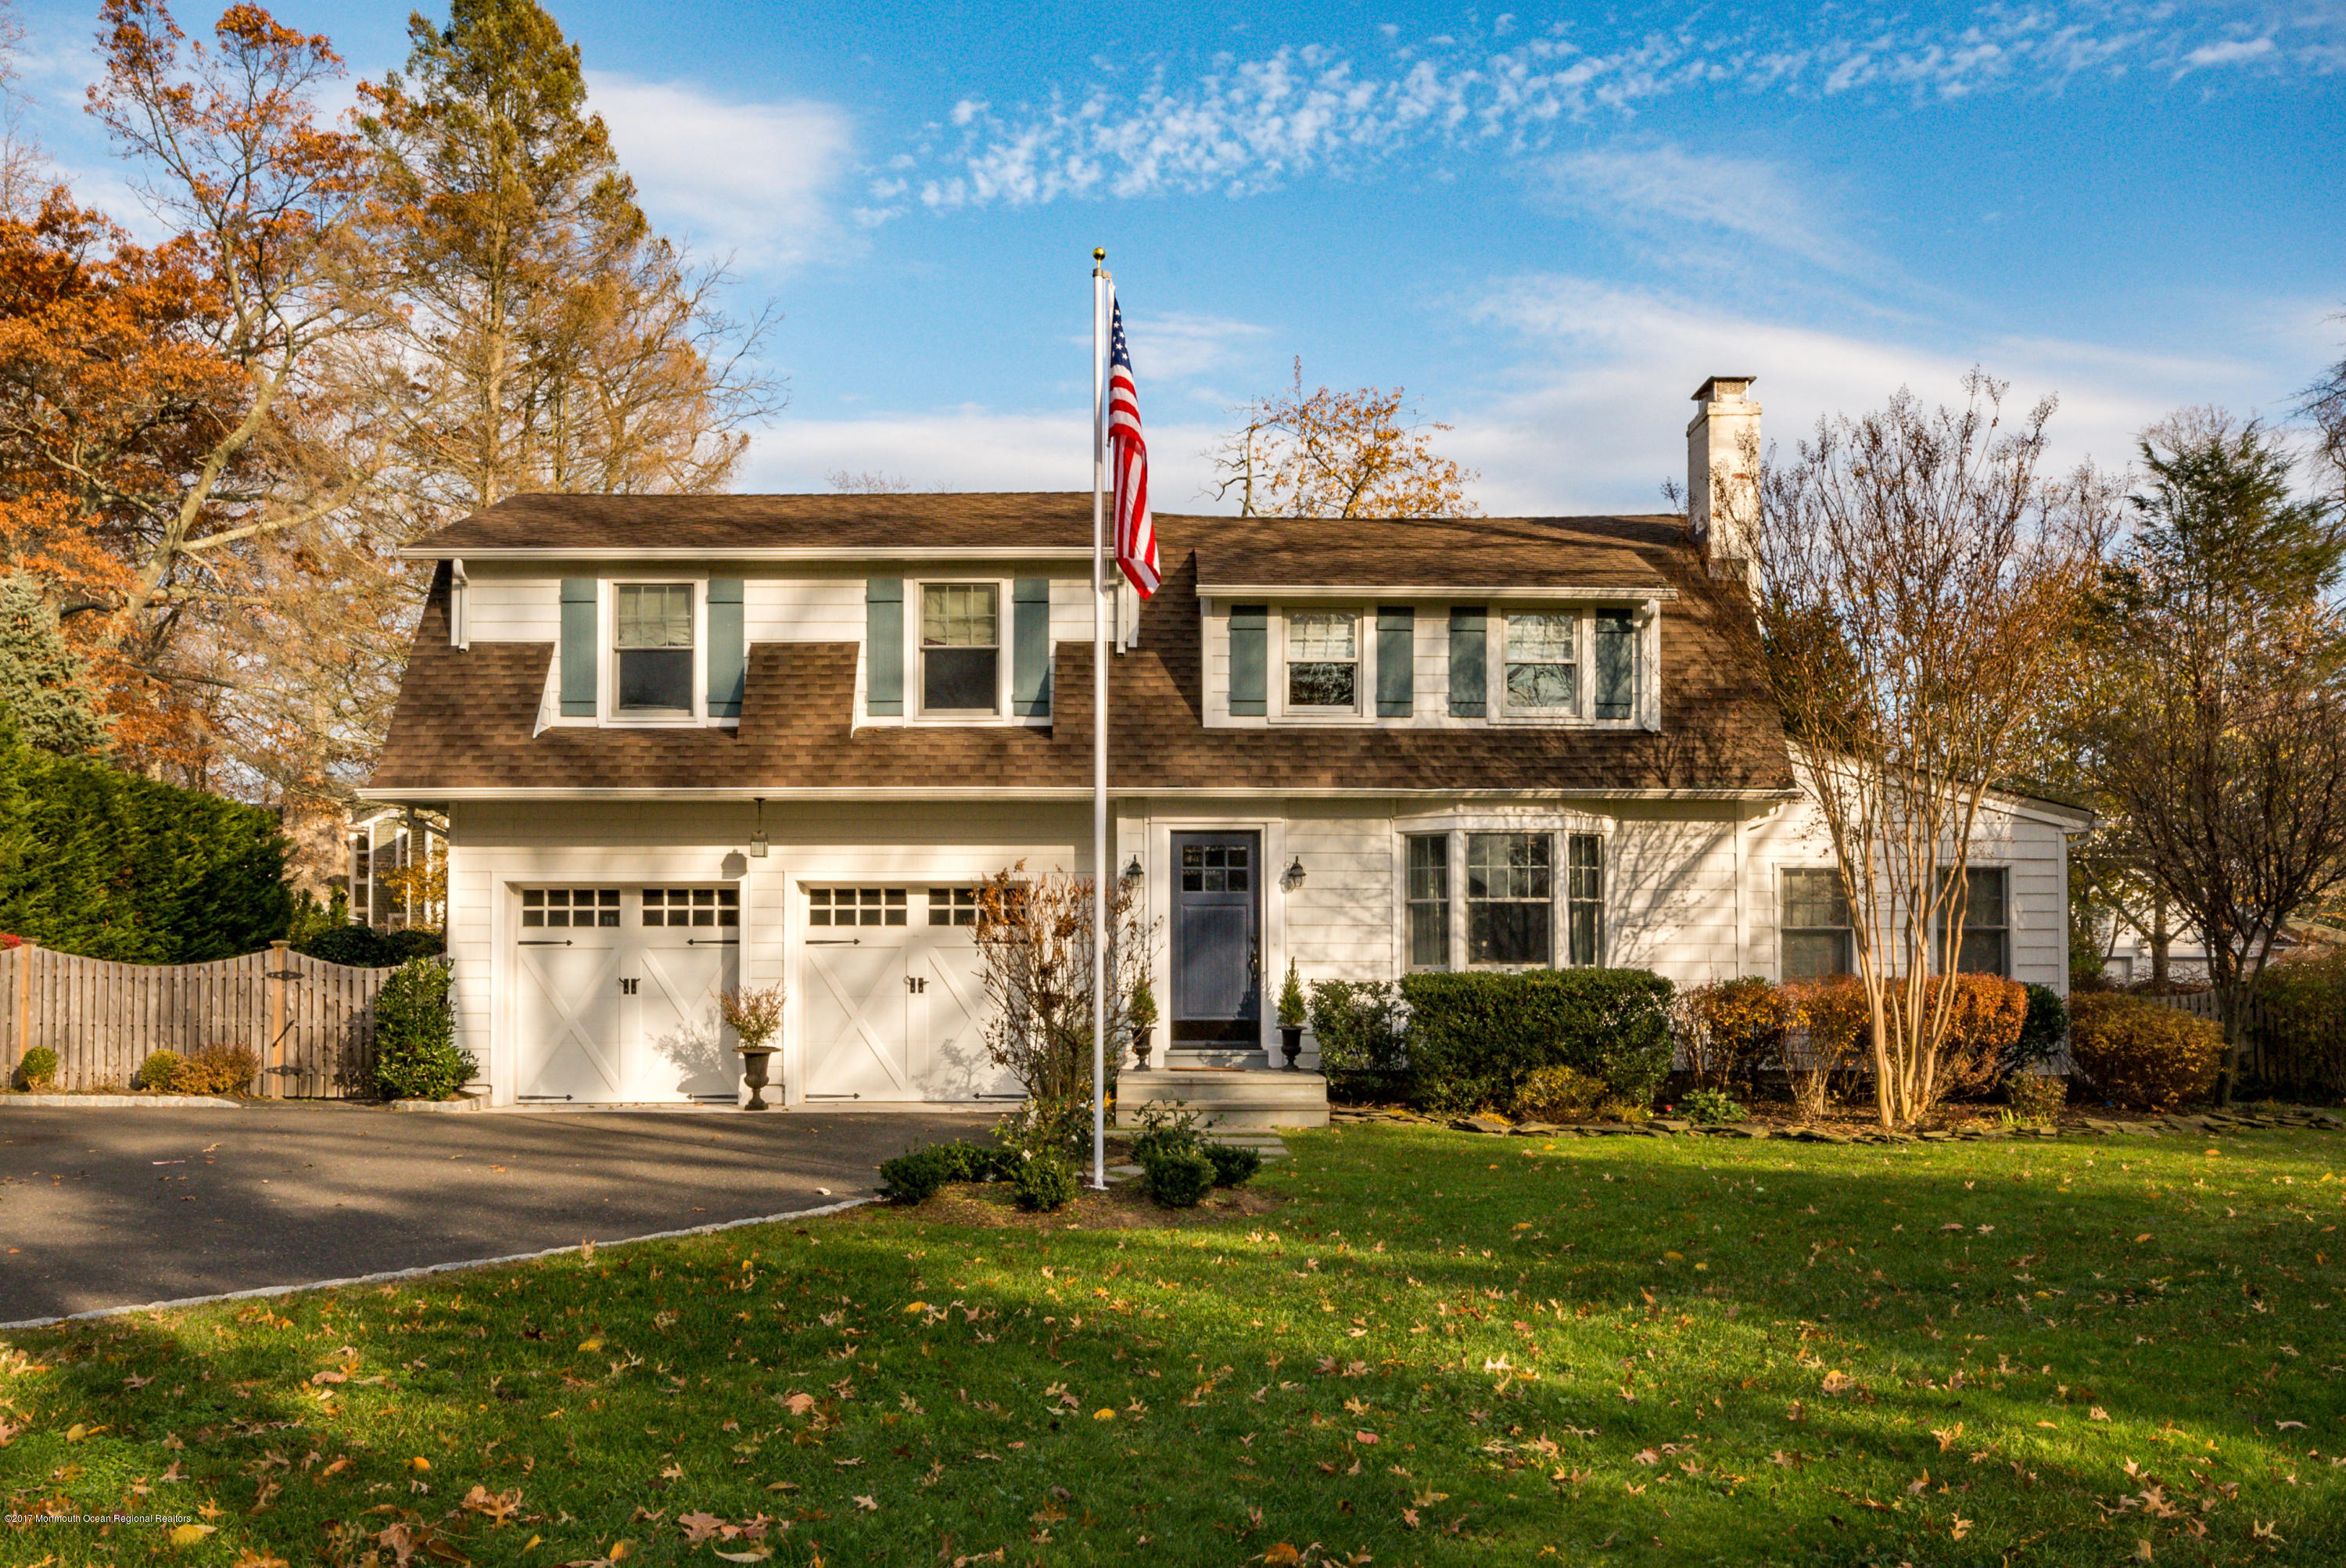 147 AVENUE OF TWO RIVERS, RUMSON, NJ 07760